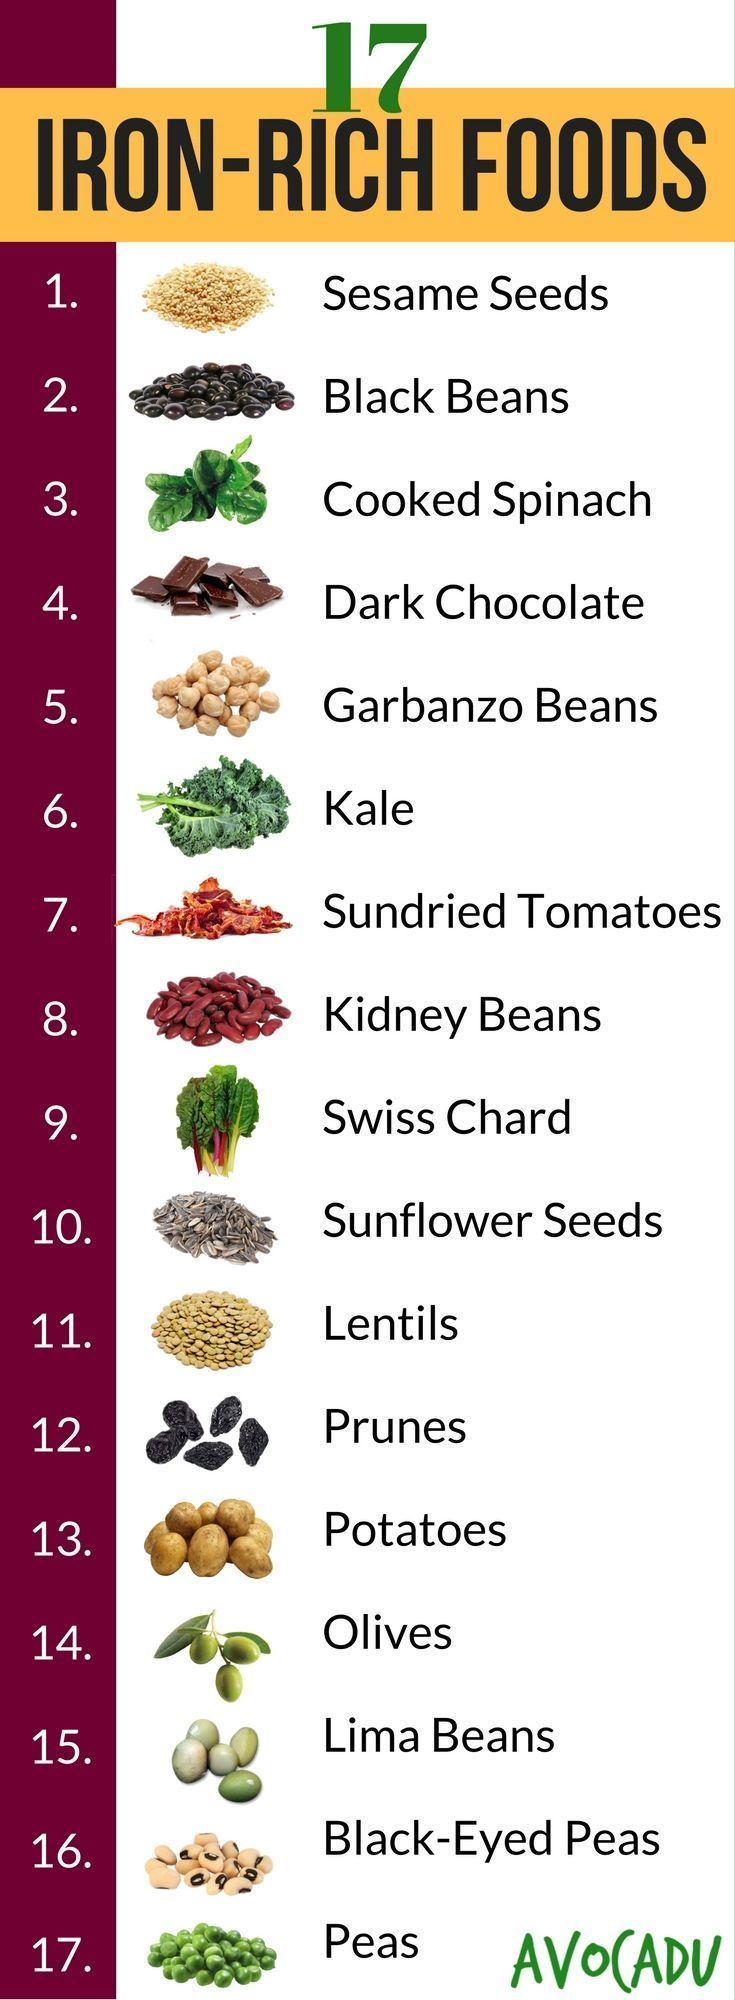 Iron Foods | Foods High in Iron | Healthy Food to Lose Weight | Diet Tips | http://avocadu.com/17-iron-rich-foods-how-to-know-youre-deficient/